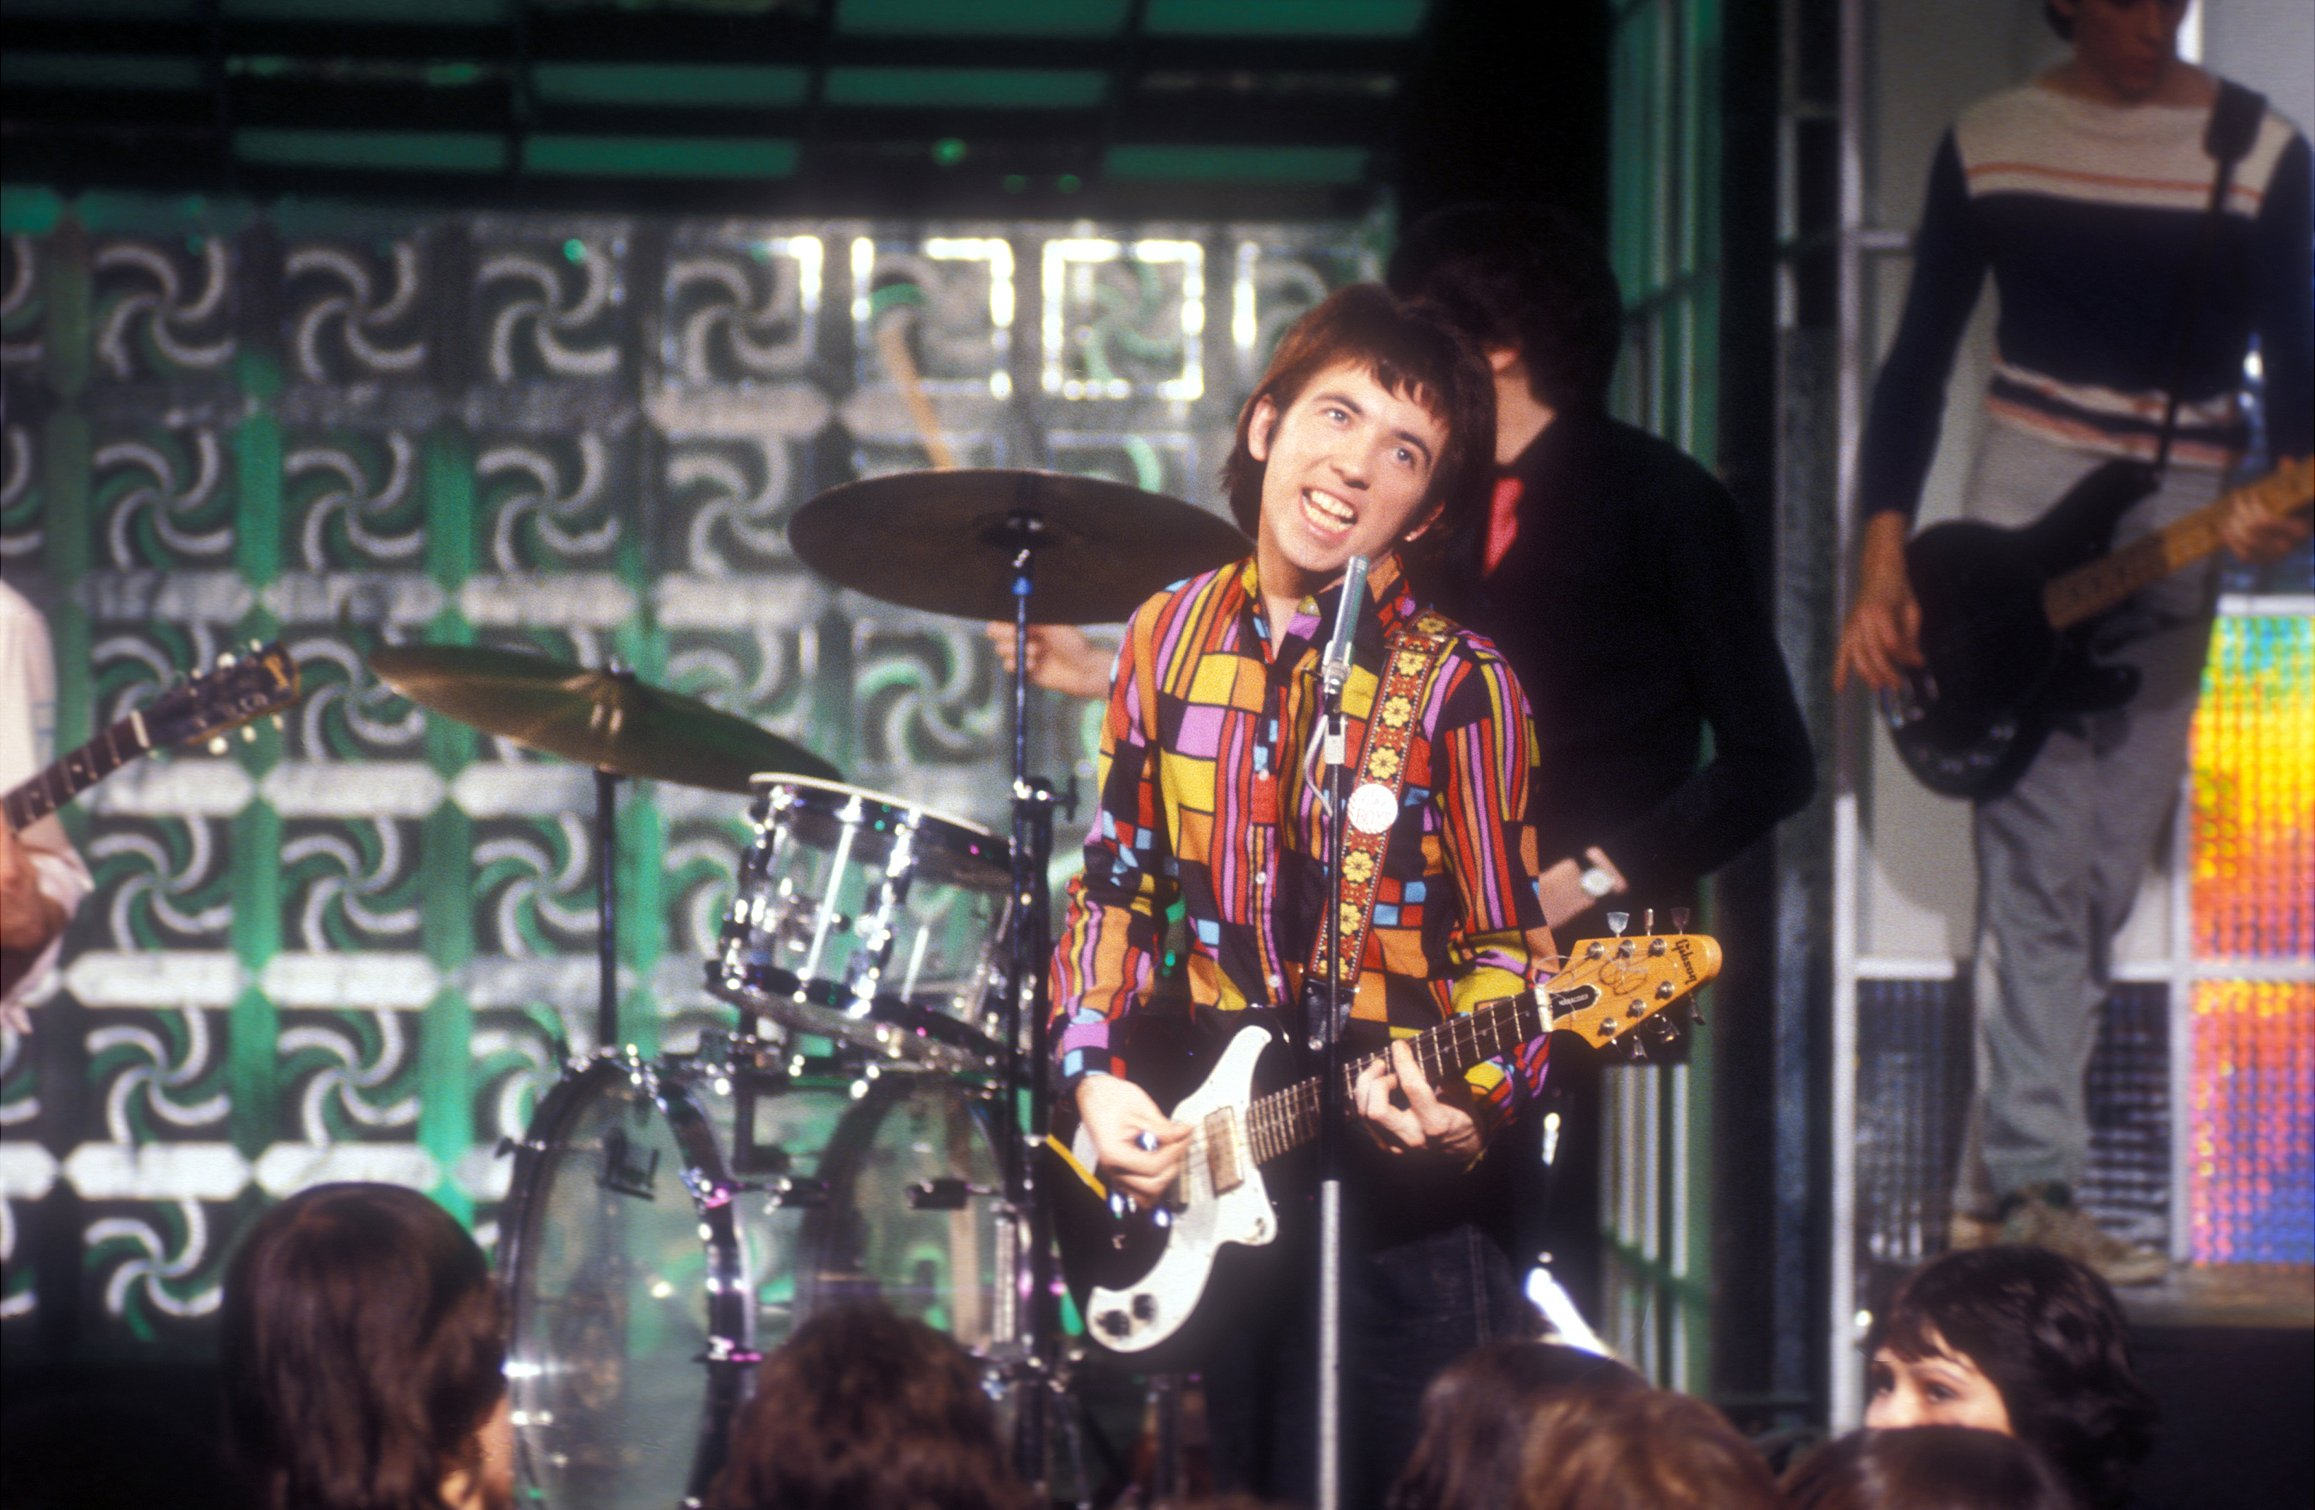 Pete Shelley performing Love You More on Top of the Pops in 1978